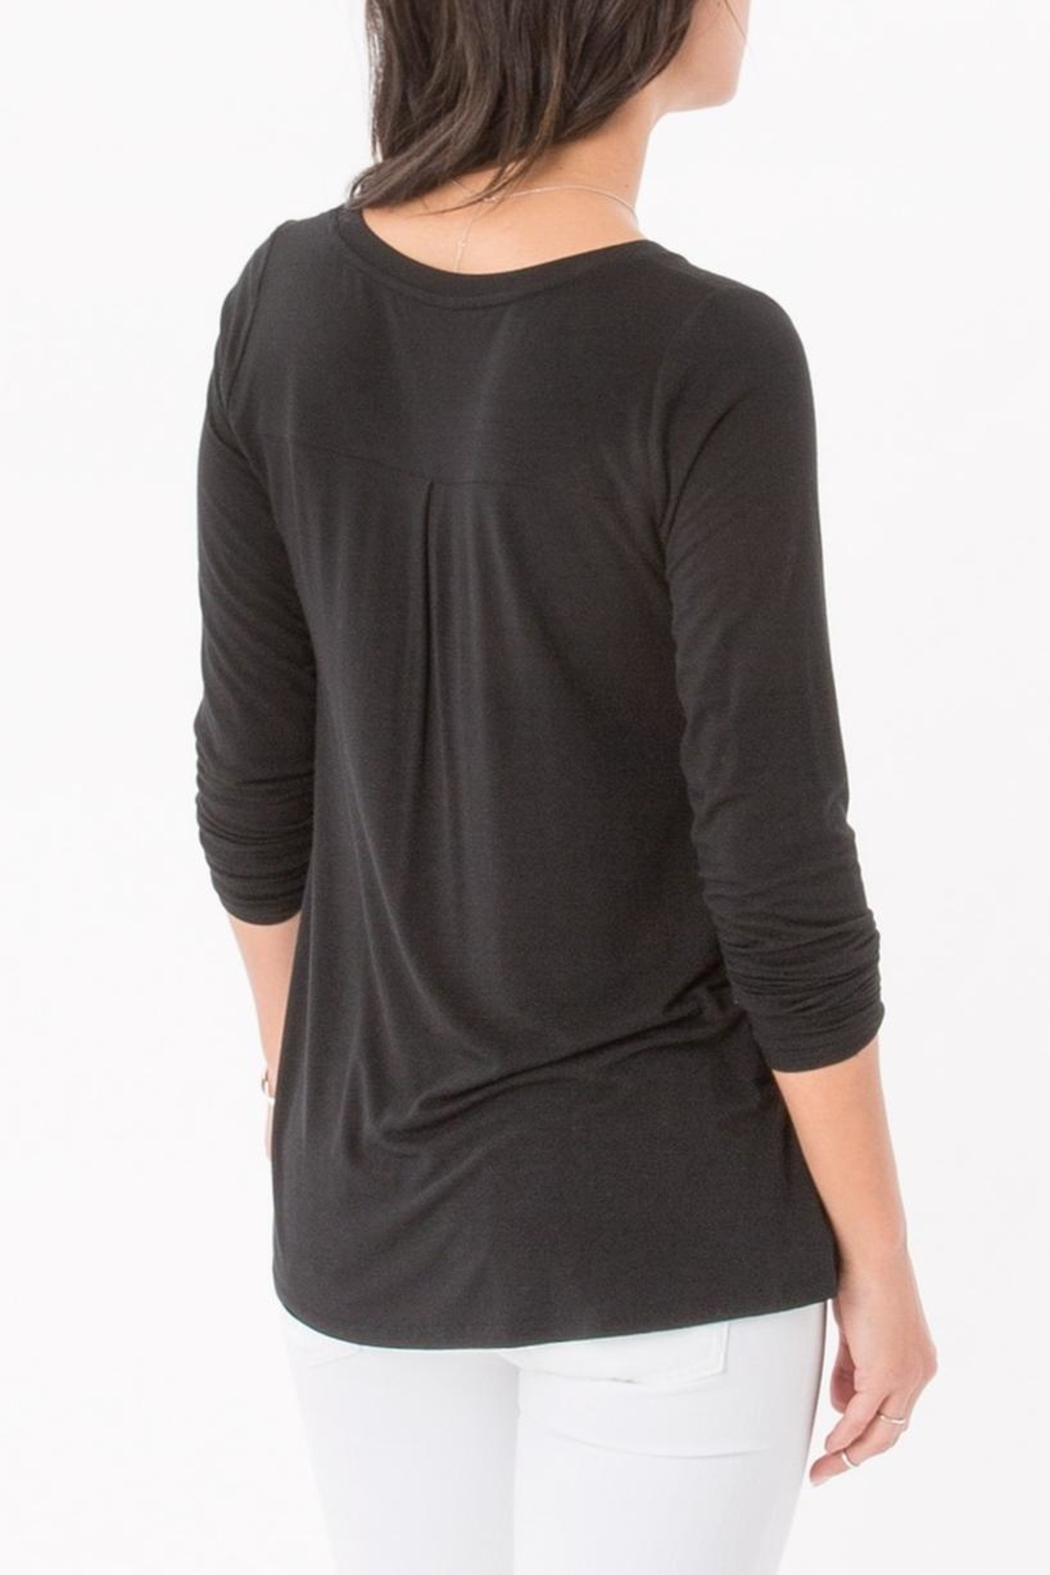 z supply Split Neck Top - Side Cropped Image